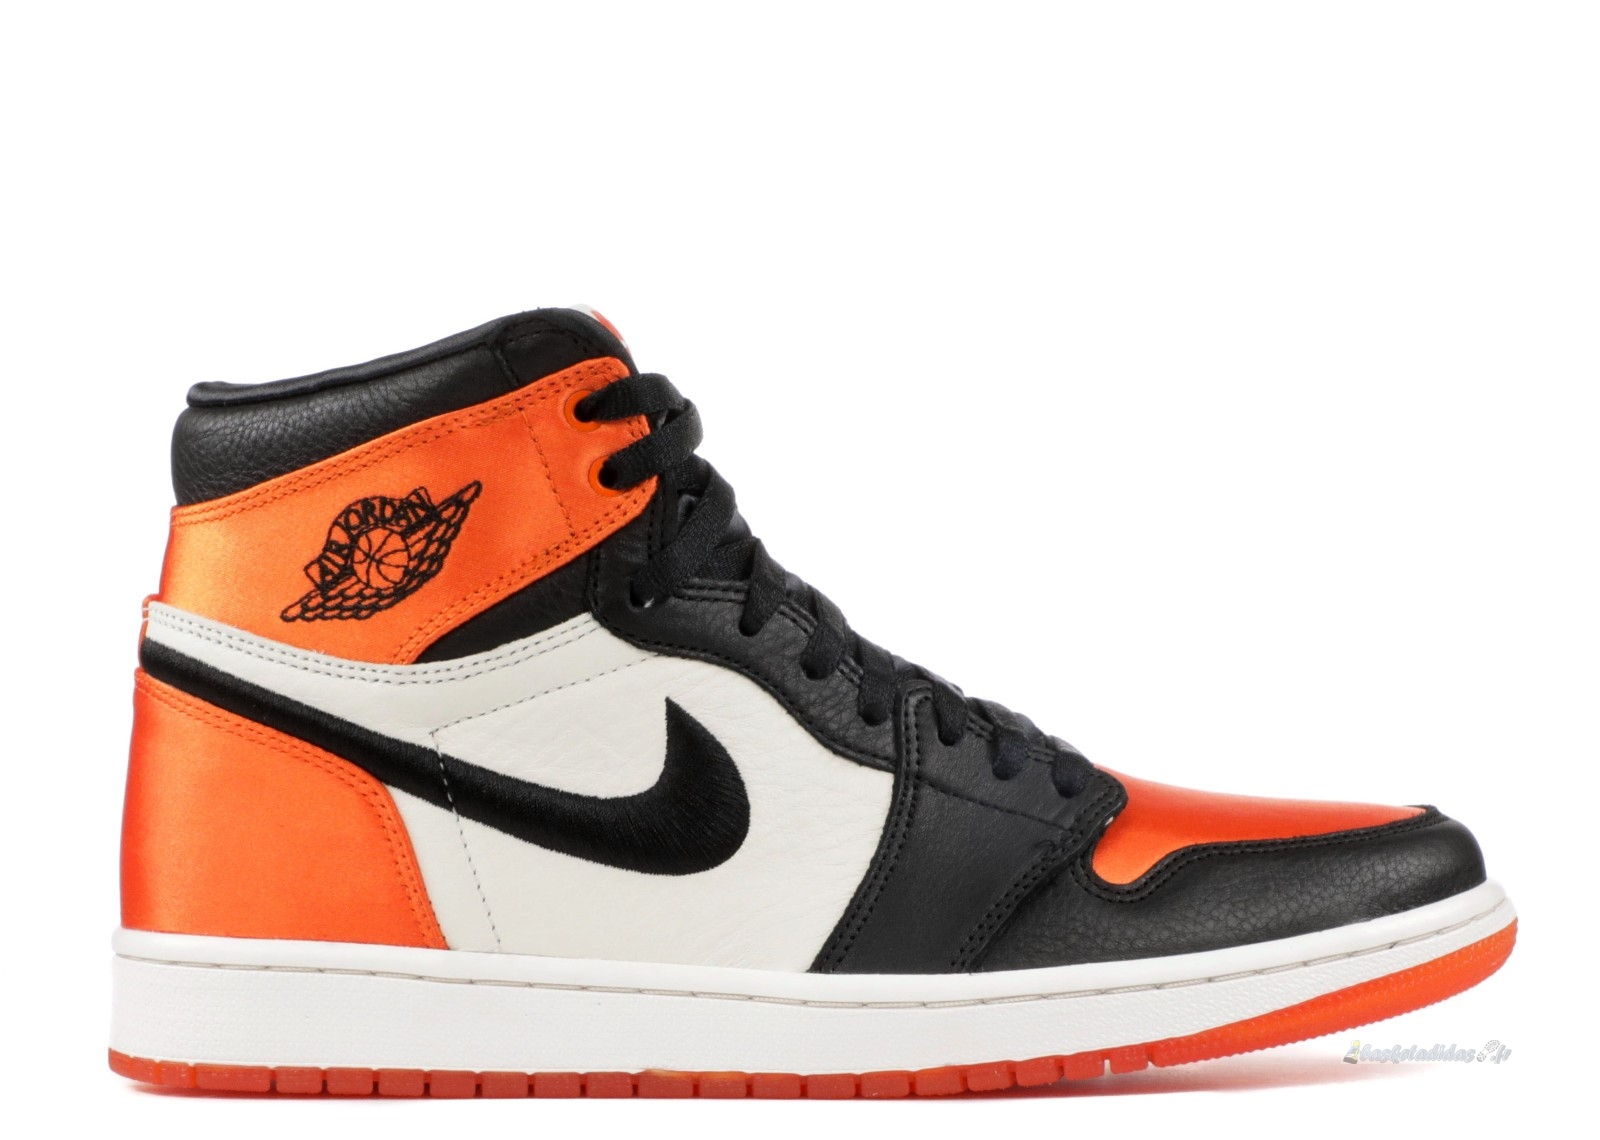 "Chaussure de Basket Air Jordan 1 Femme Re High Og Sl ""Satin Shattered Backboard"" Noir Orange (av3725-010)"